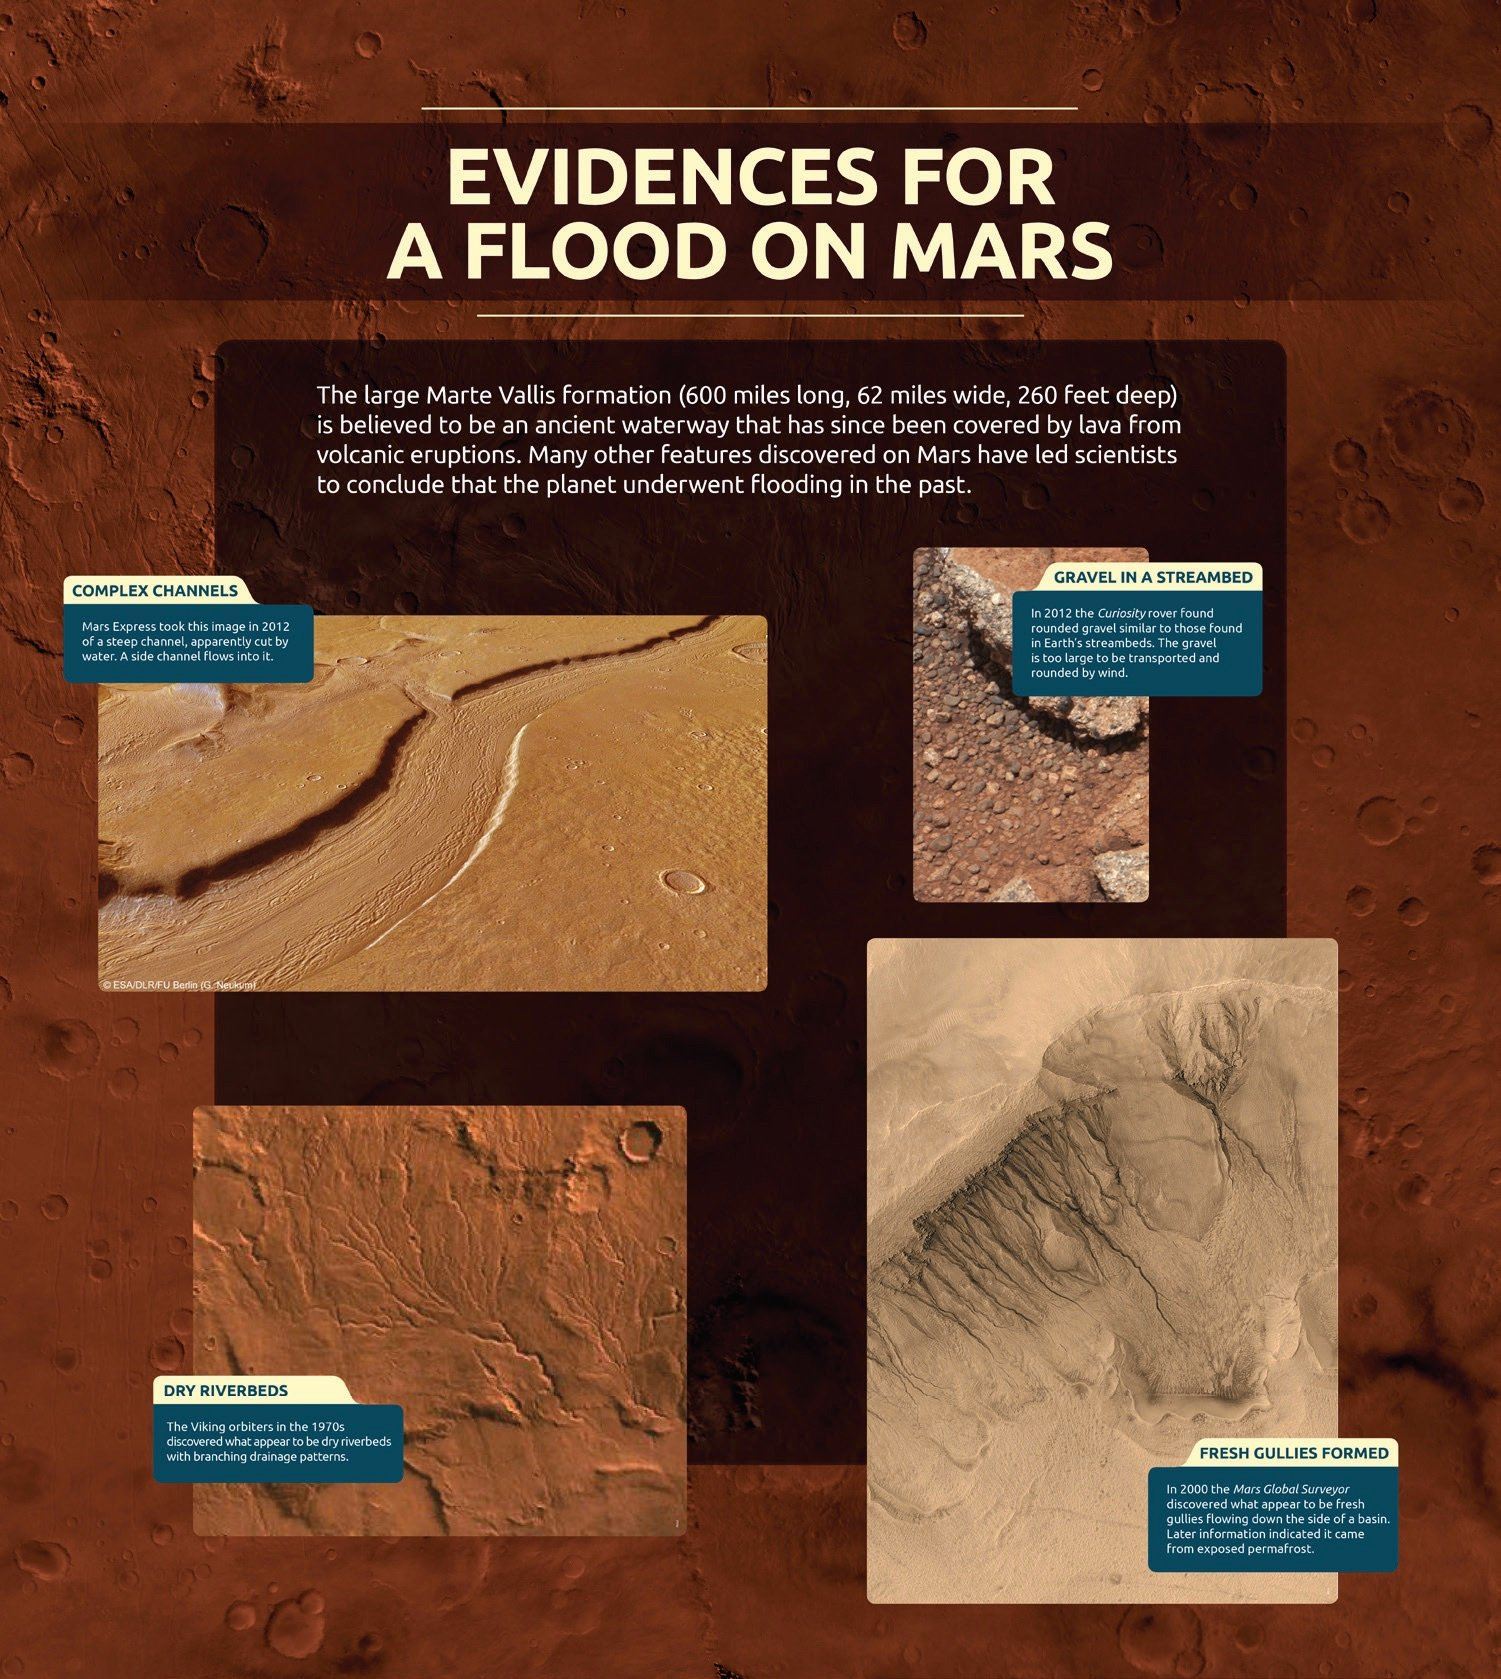 Evidences for Flood on Mars